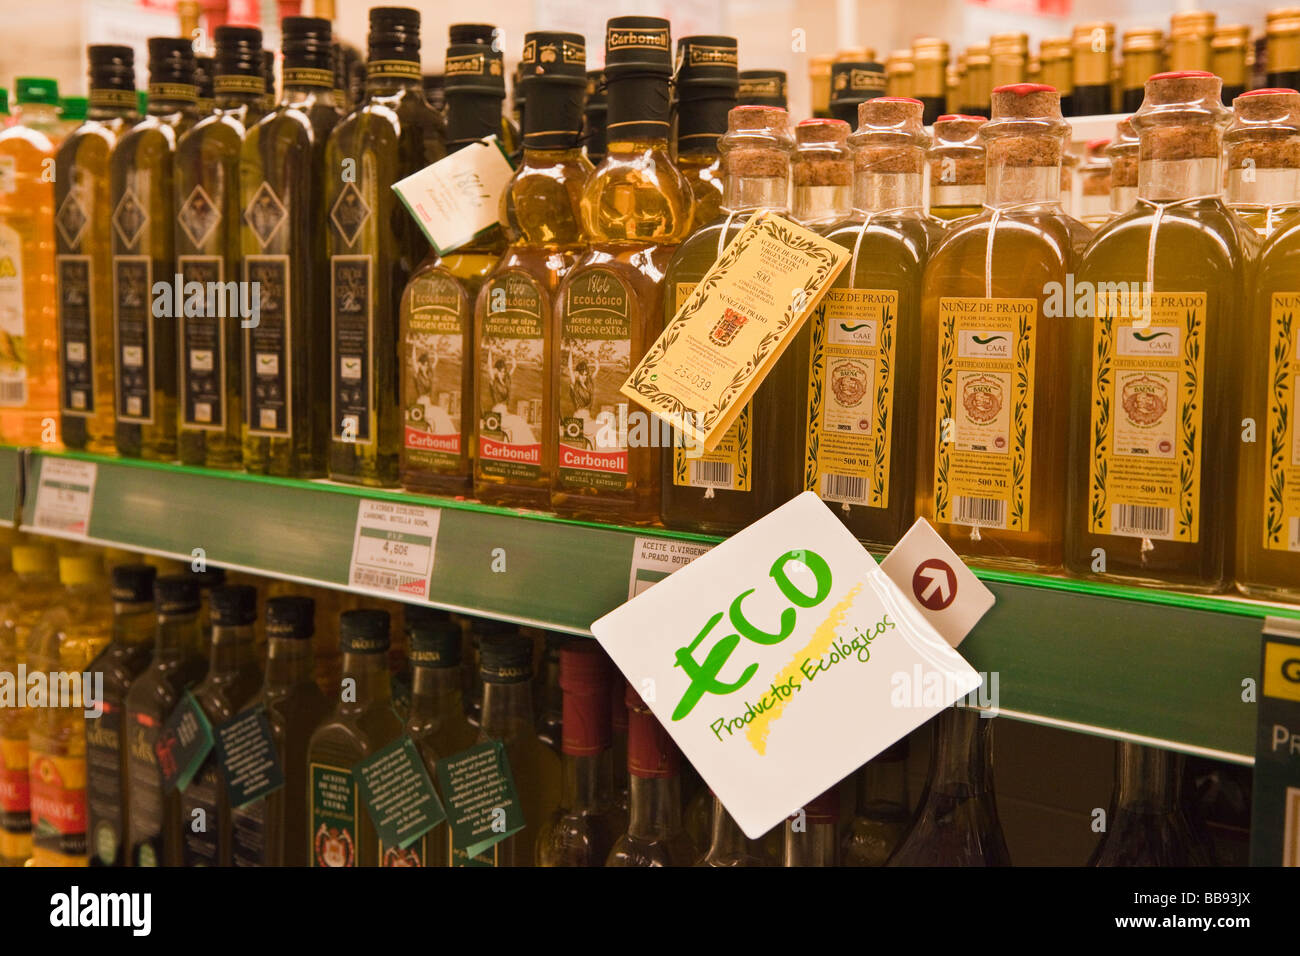 Olive Oil Production Stock Photos & Olive Oil Production Stock ...